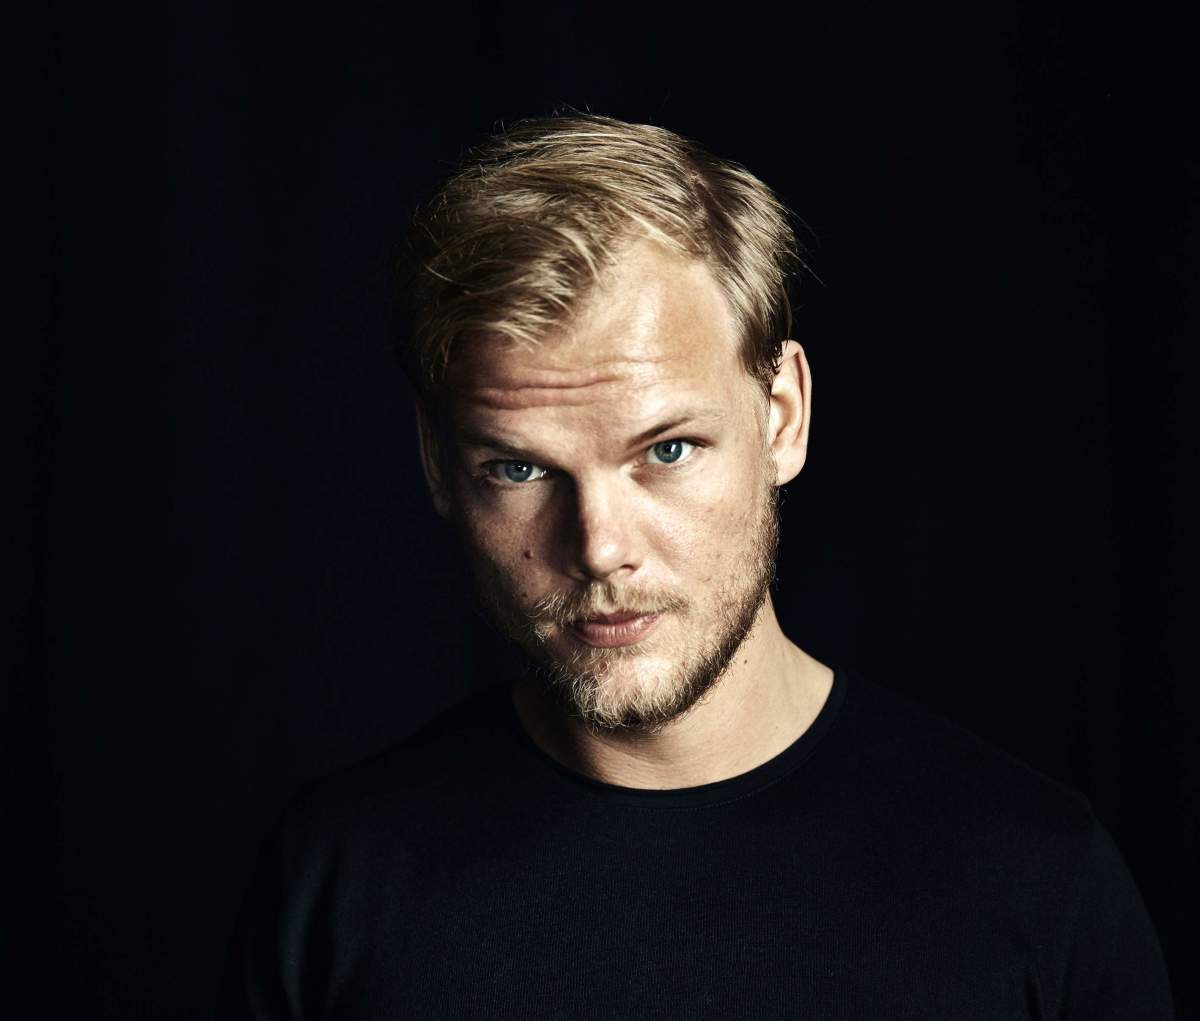 Fans will be Able to Pre-listen to Avicii's Posthumous Album via Worldwide Cube Installations